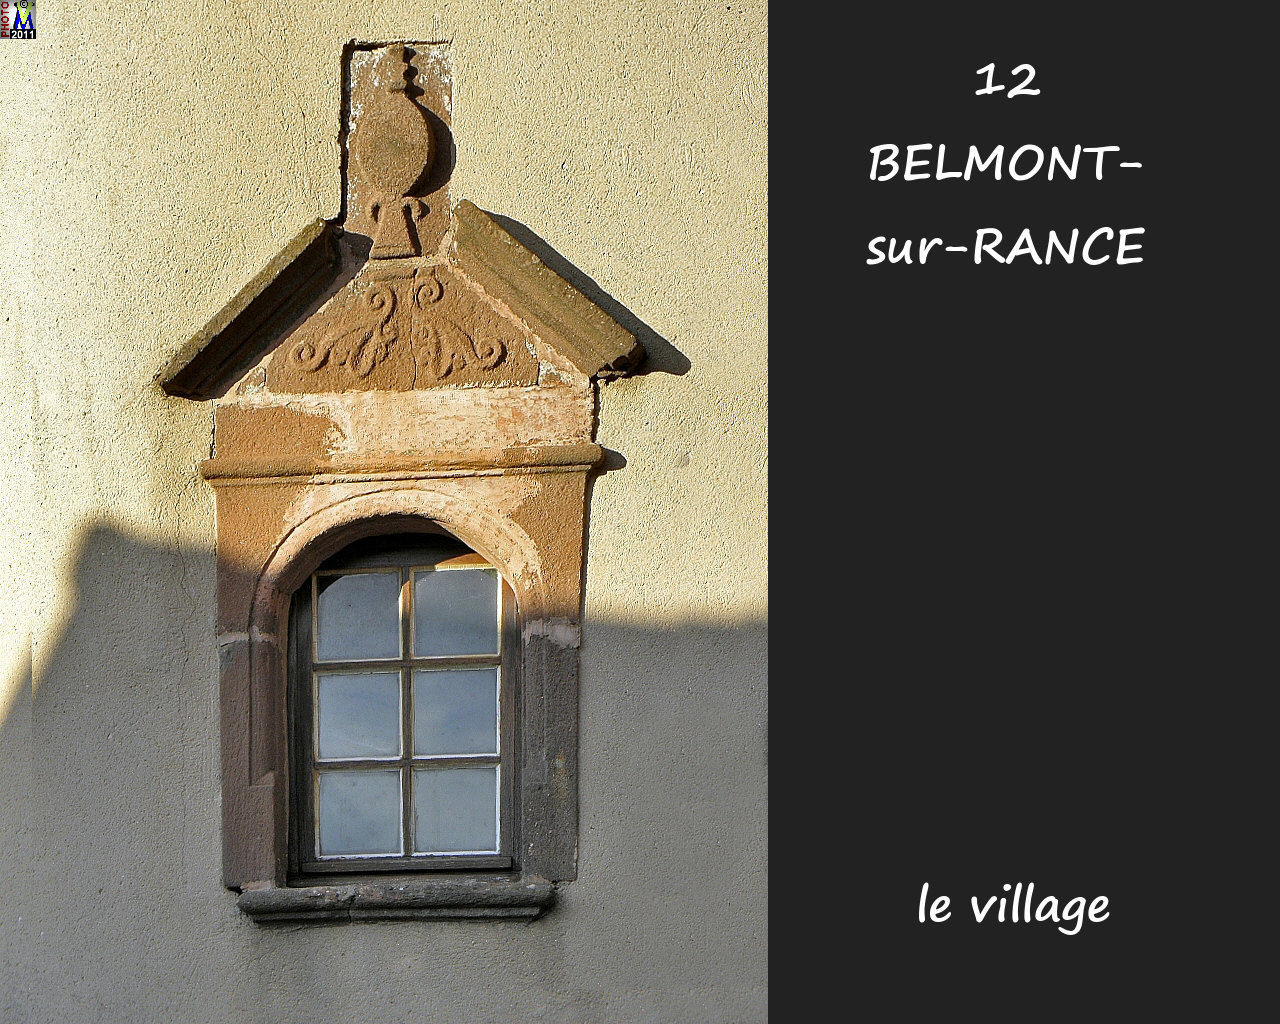 12BELMONT-RANCE_village_122.jpg